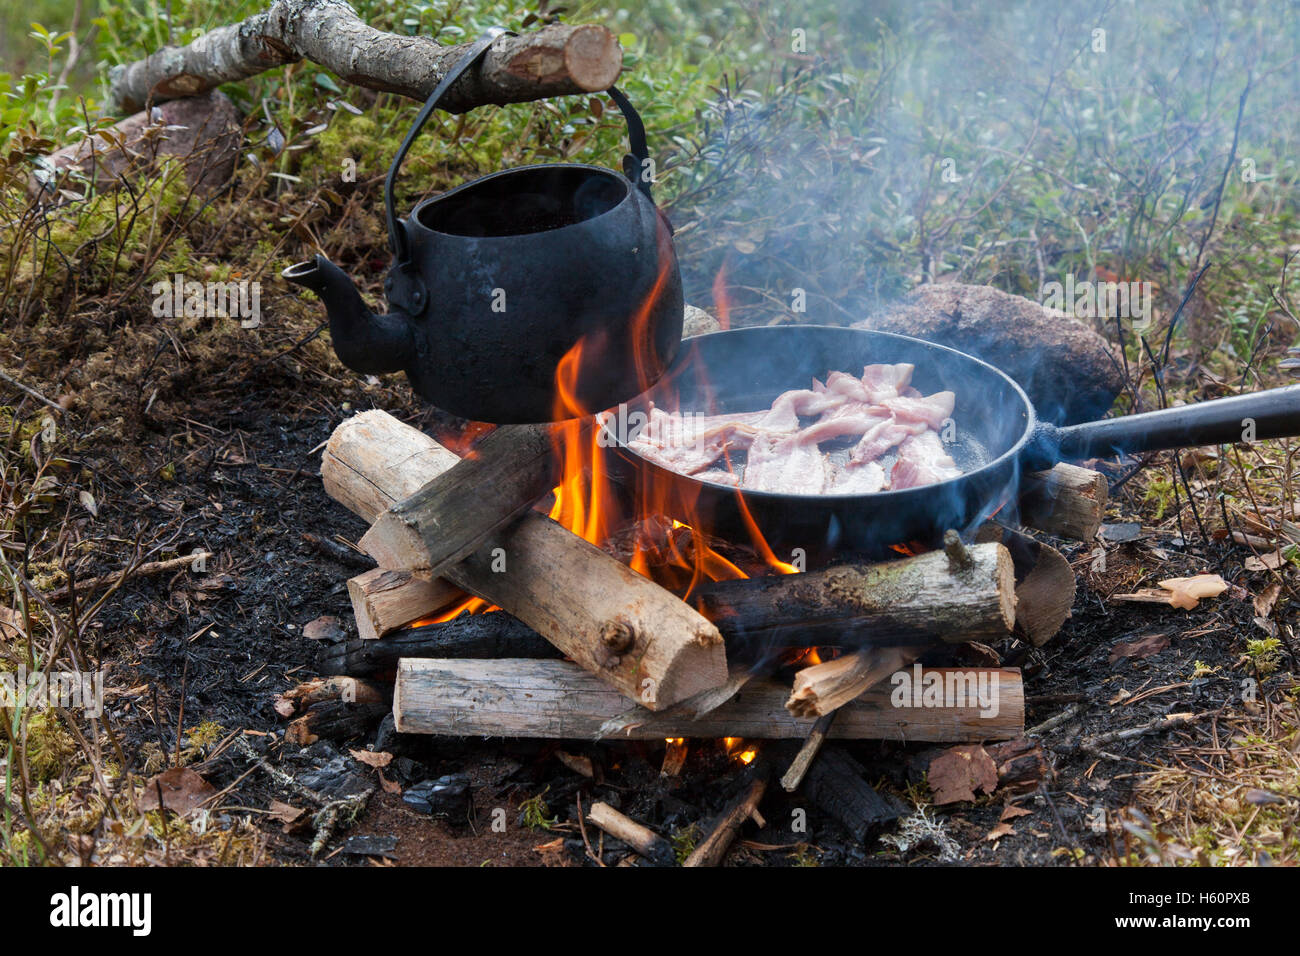 How To Boil Water The Forest